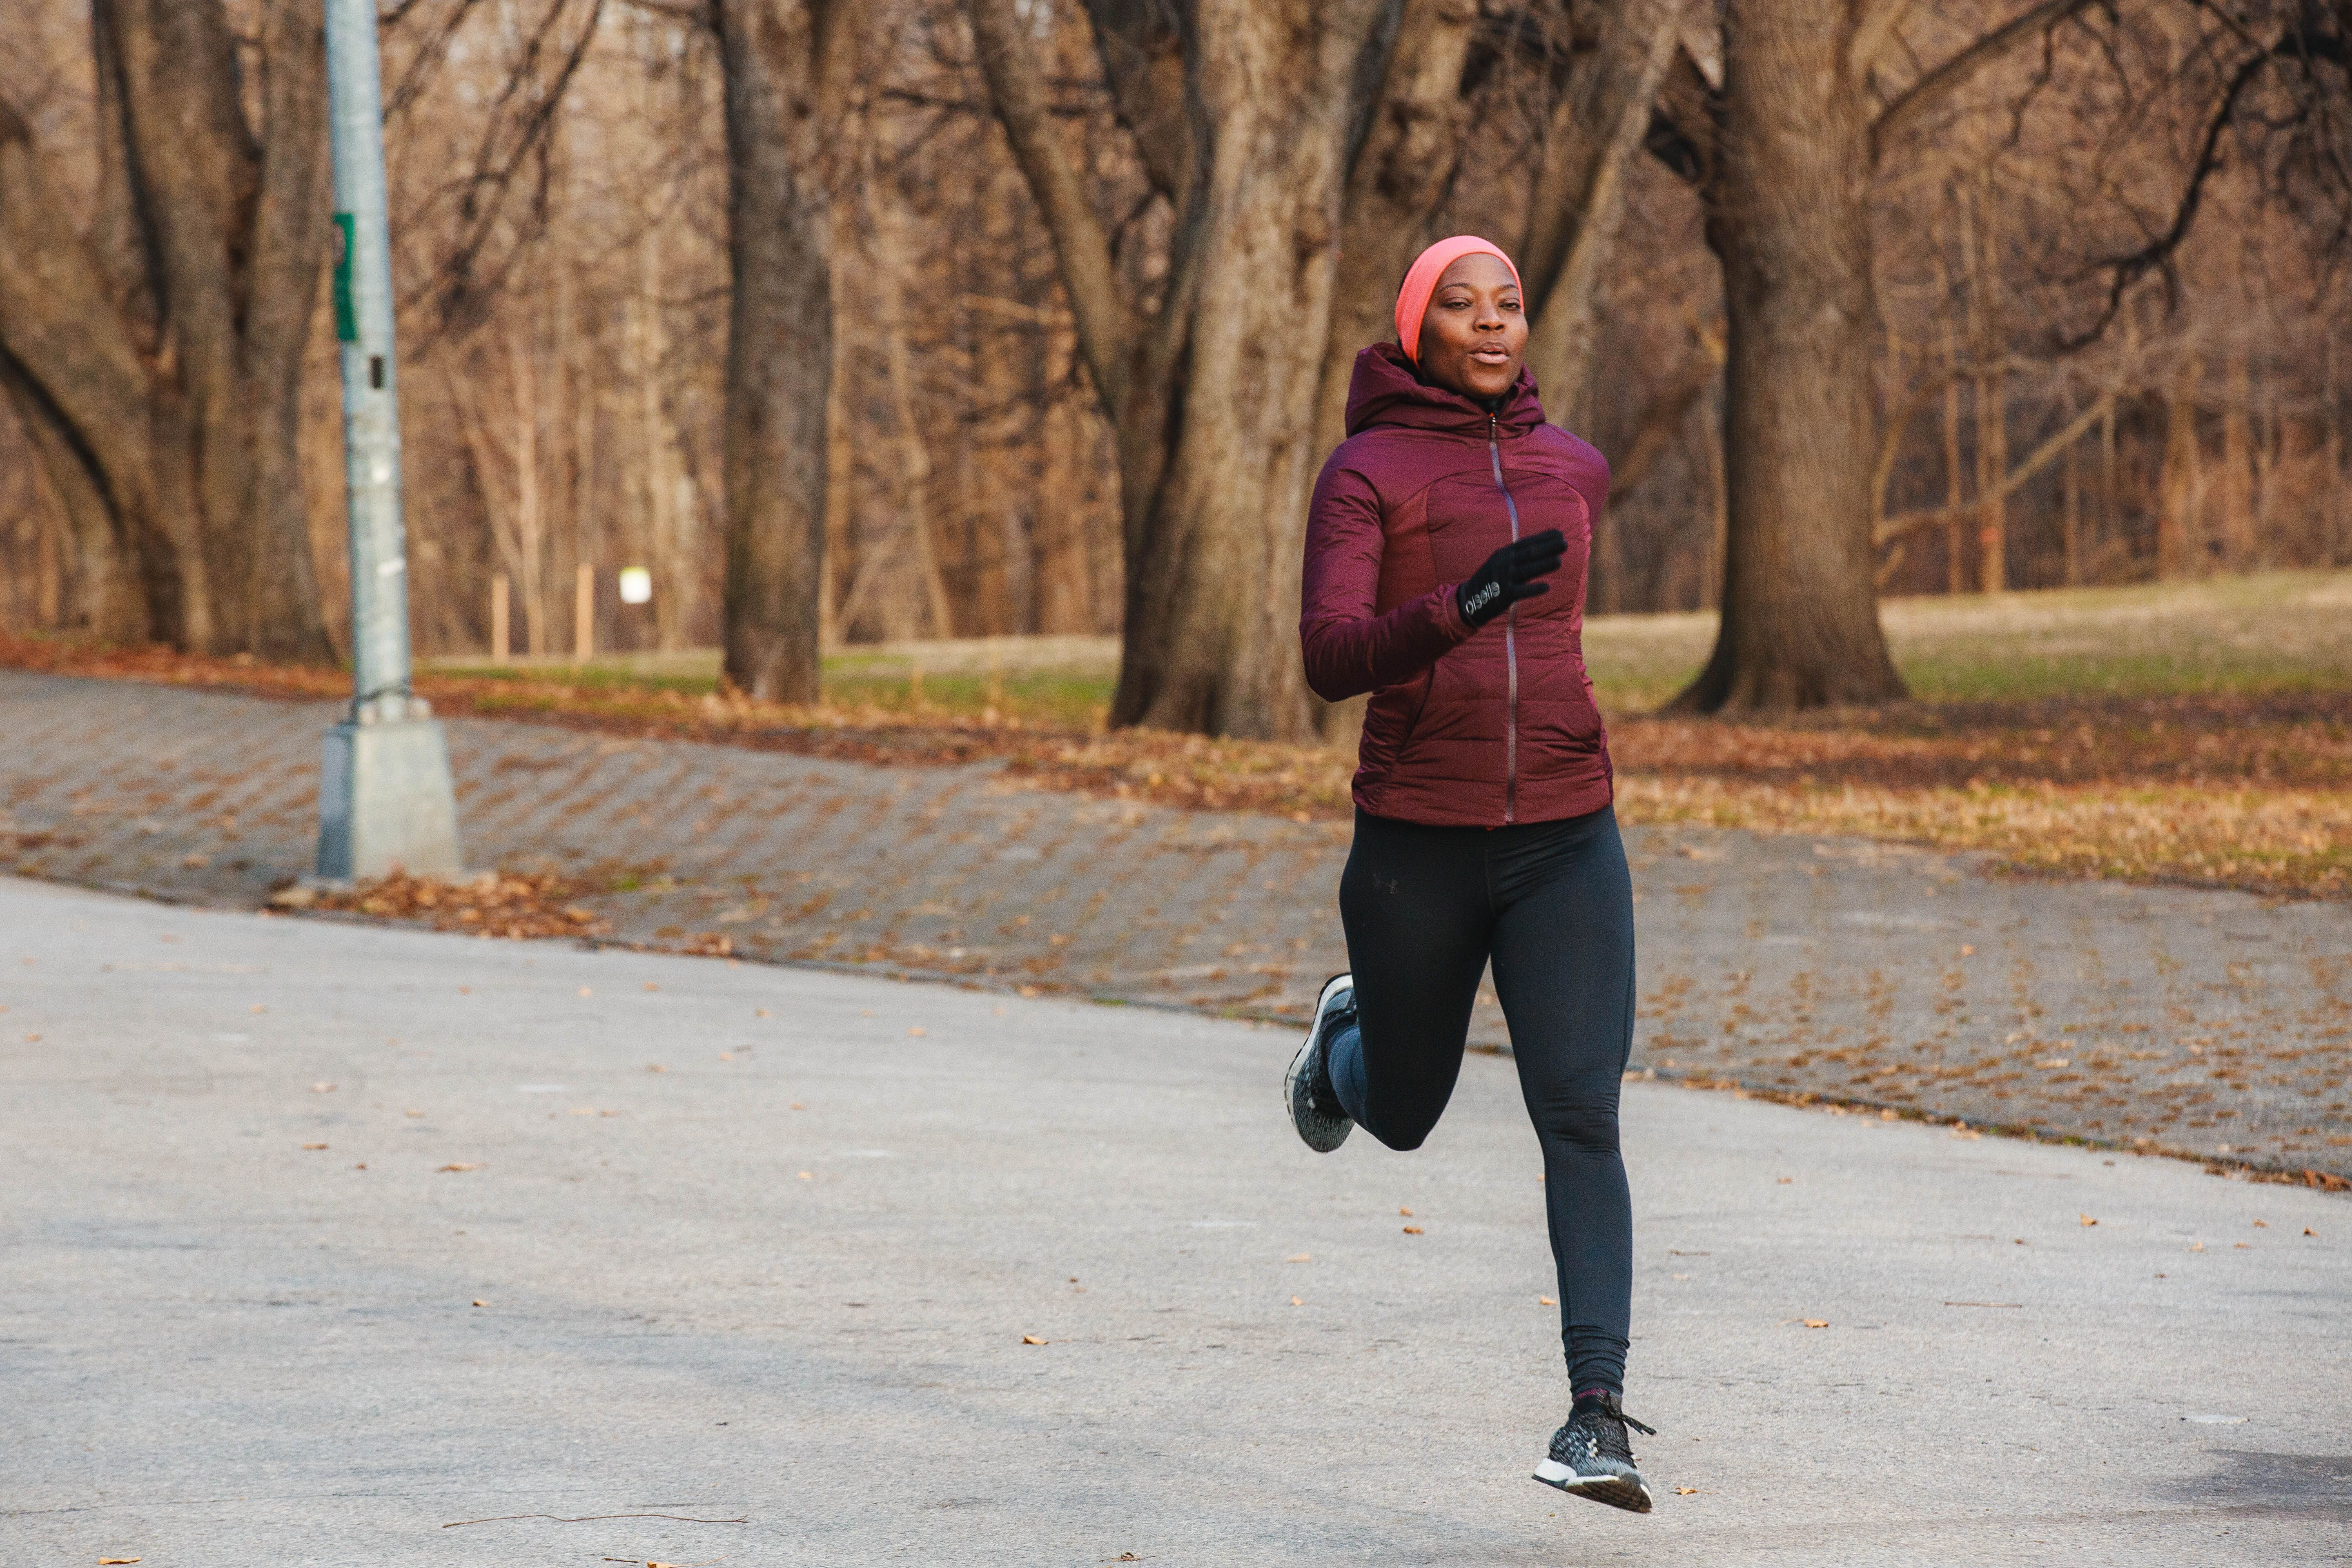 How to Learn to Love Solo Running